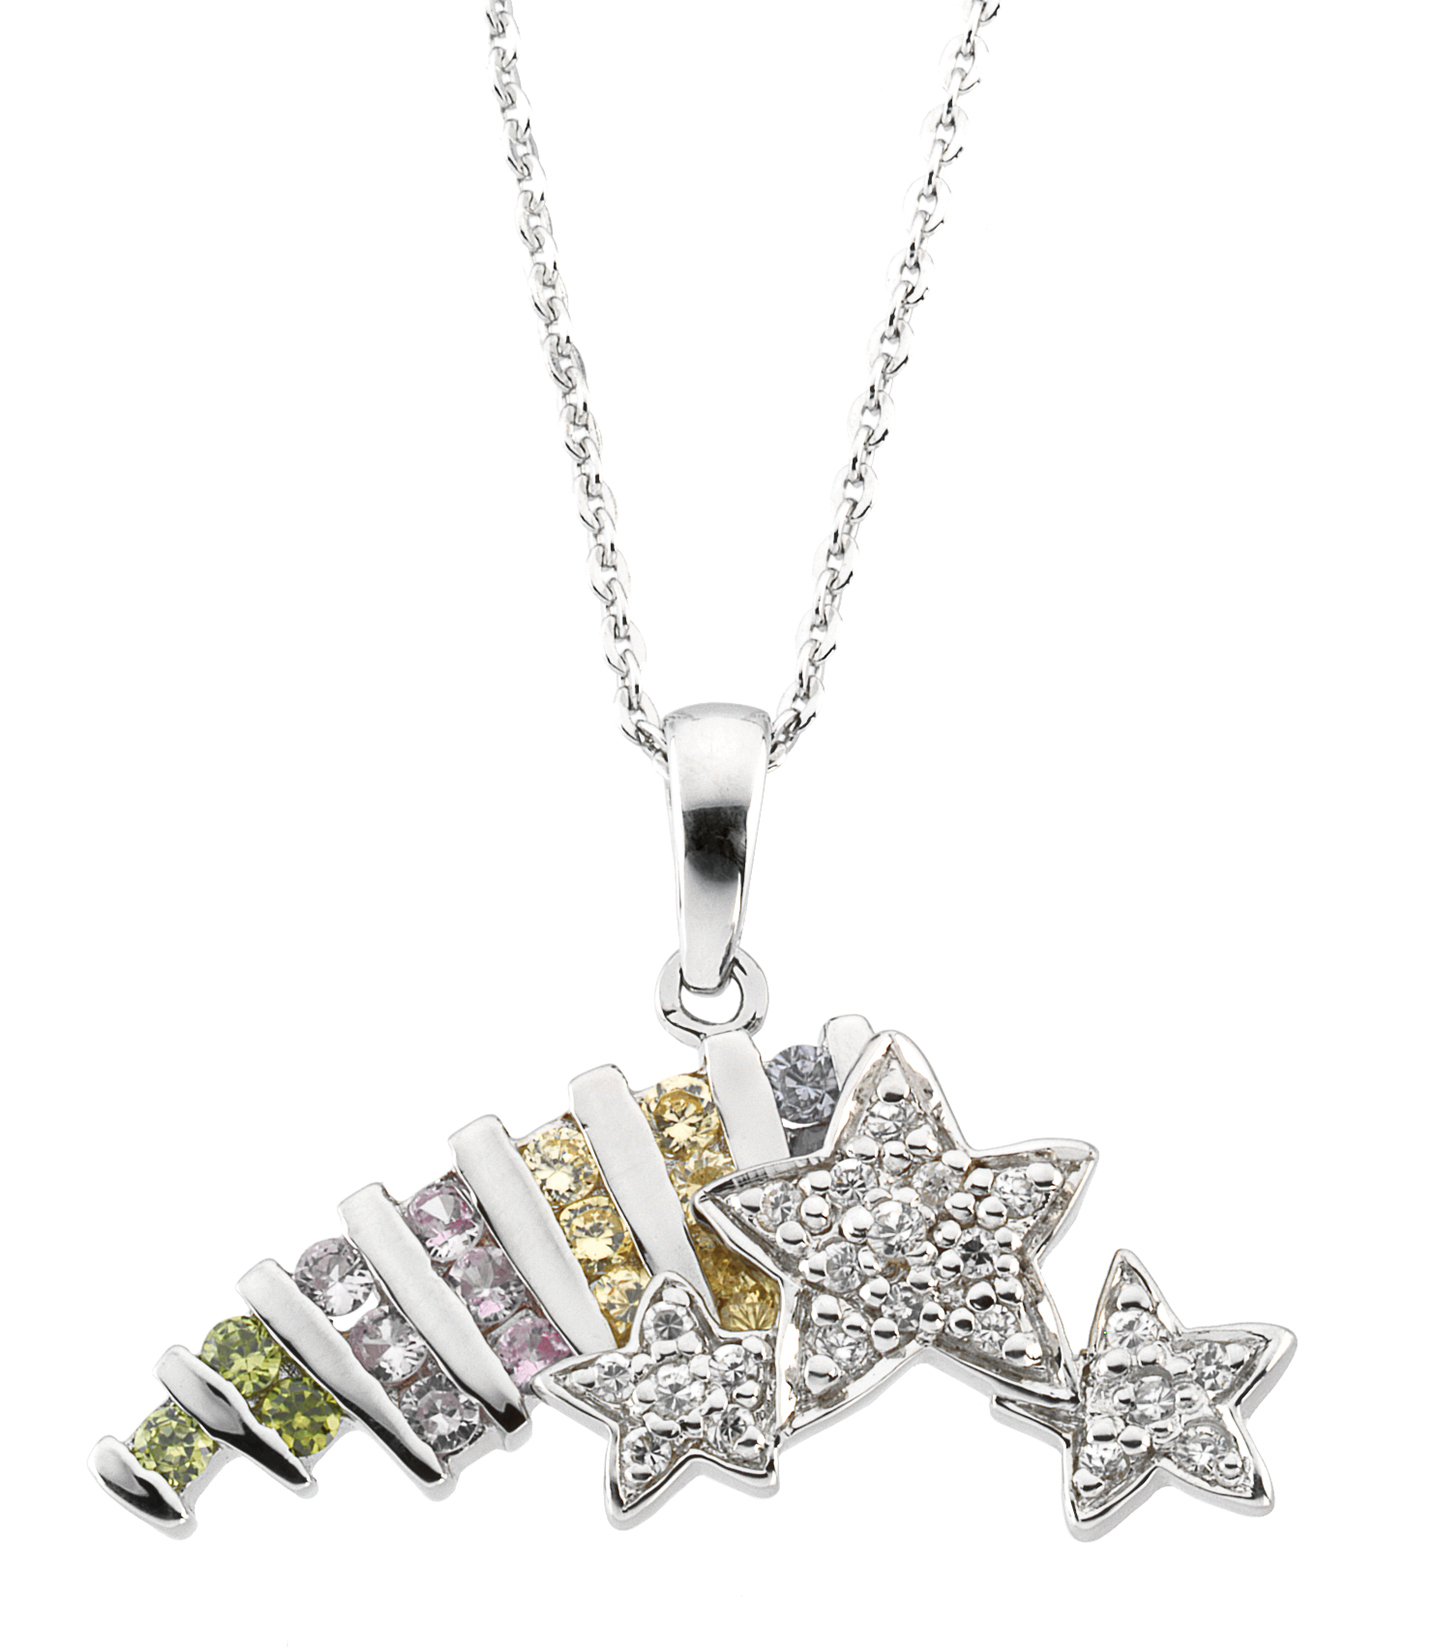 Stuller Dare to Dream necklace by Deborah J Birdoes | JCK On Your Market